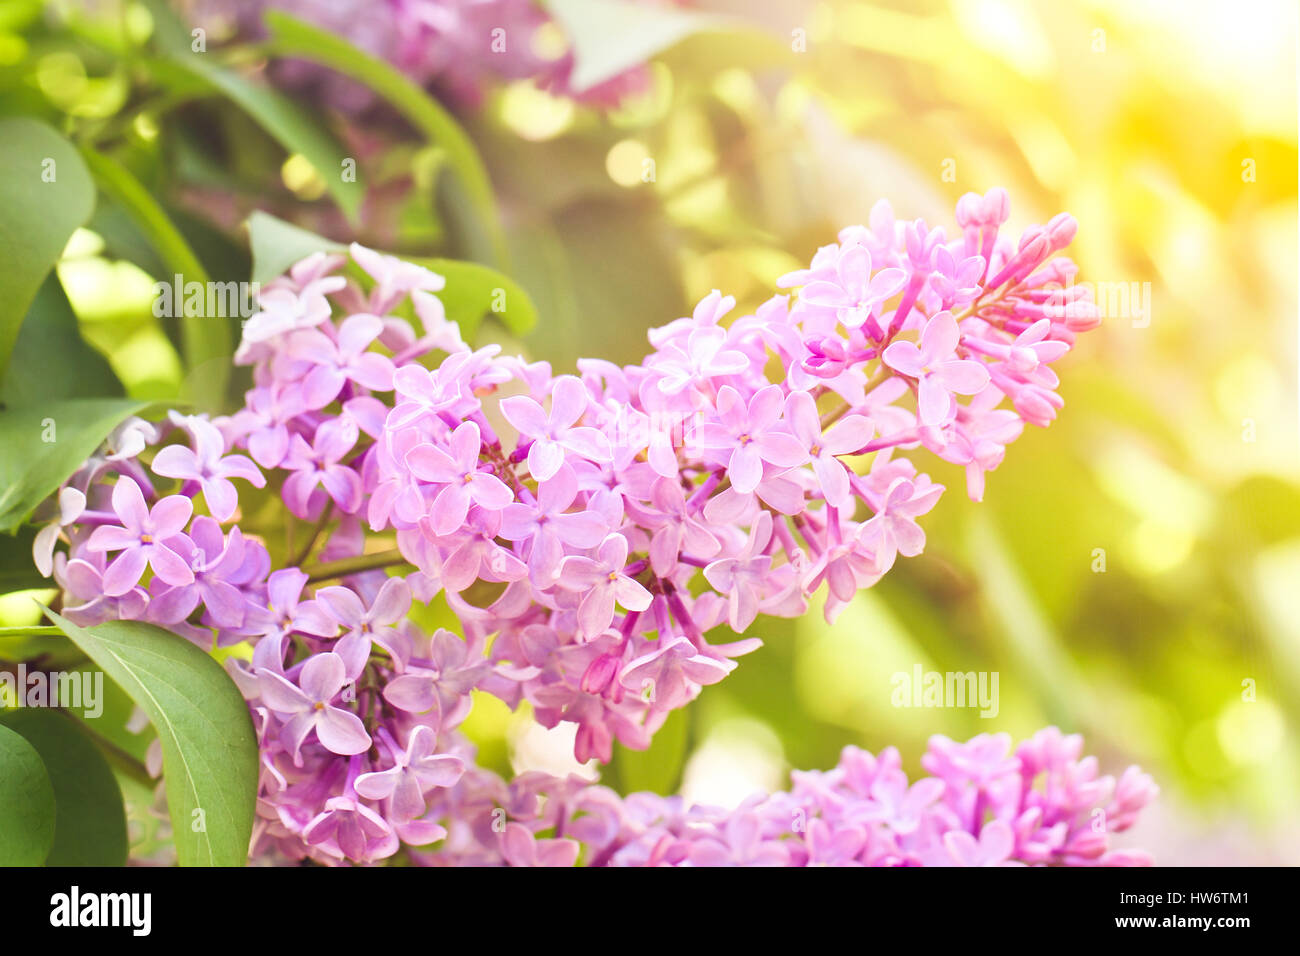 spring lilac flower - Stock Image